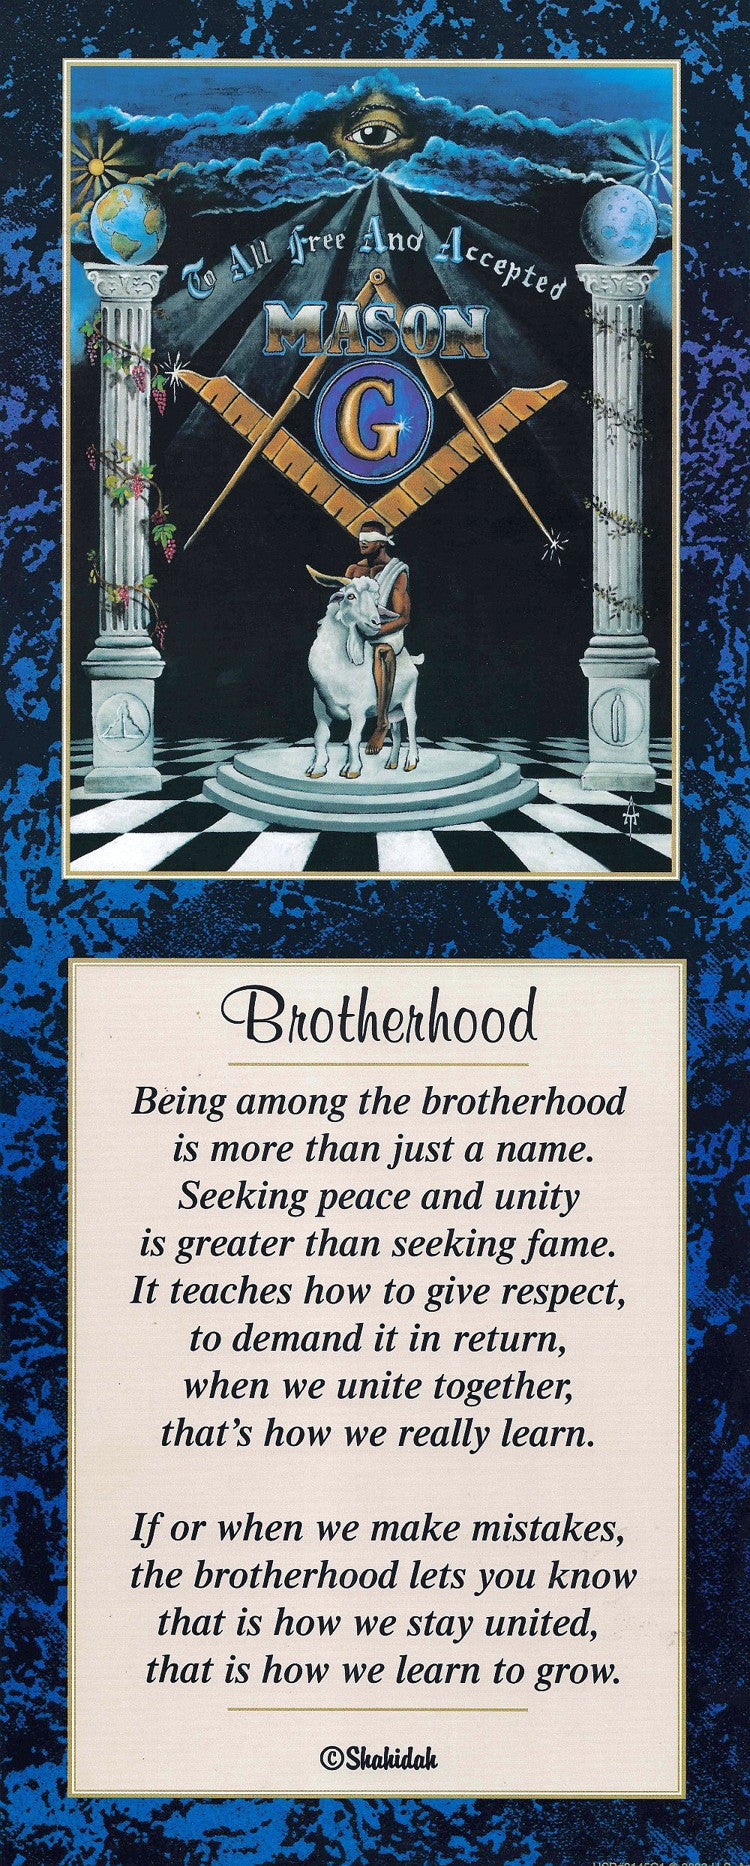 Brotherhood by Tracy Andrews and Shahidah (Freemasonry)